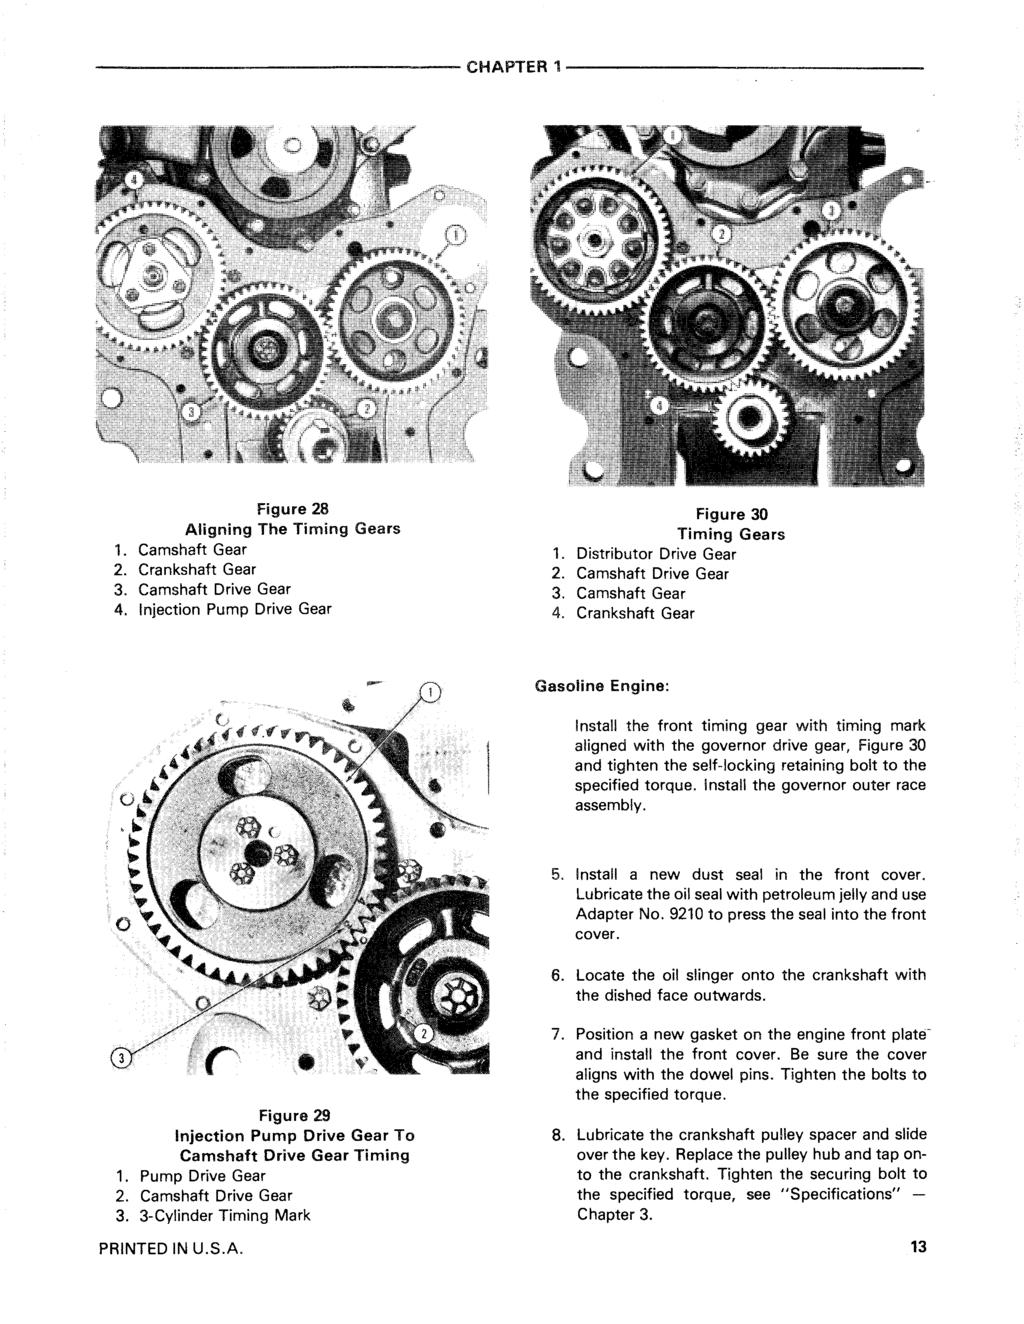 --------------------------------CHAPTER1------------------------------- Figure 28 Aligning The Timing Gears 1. Camshaft Gear 2. Crankshaft Gear 3. Camshaft Drive Gear 4.